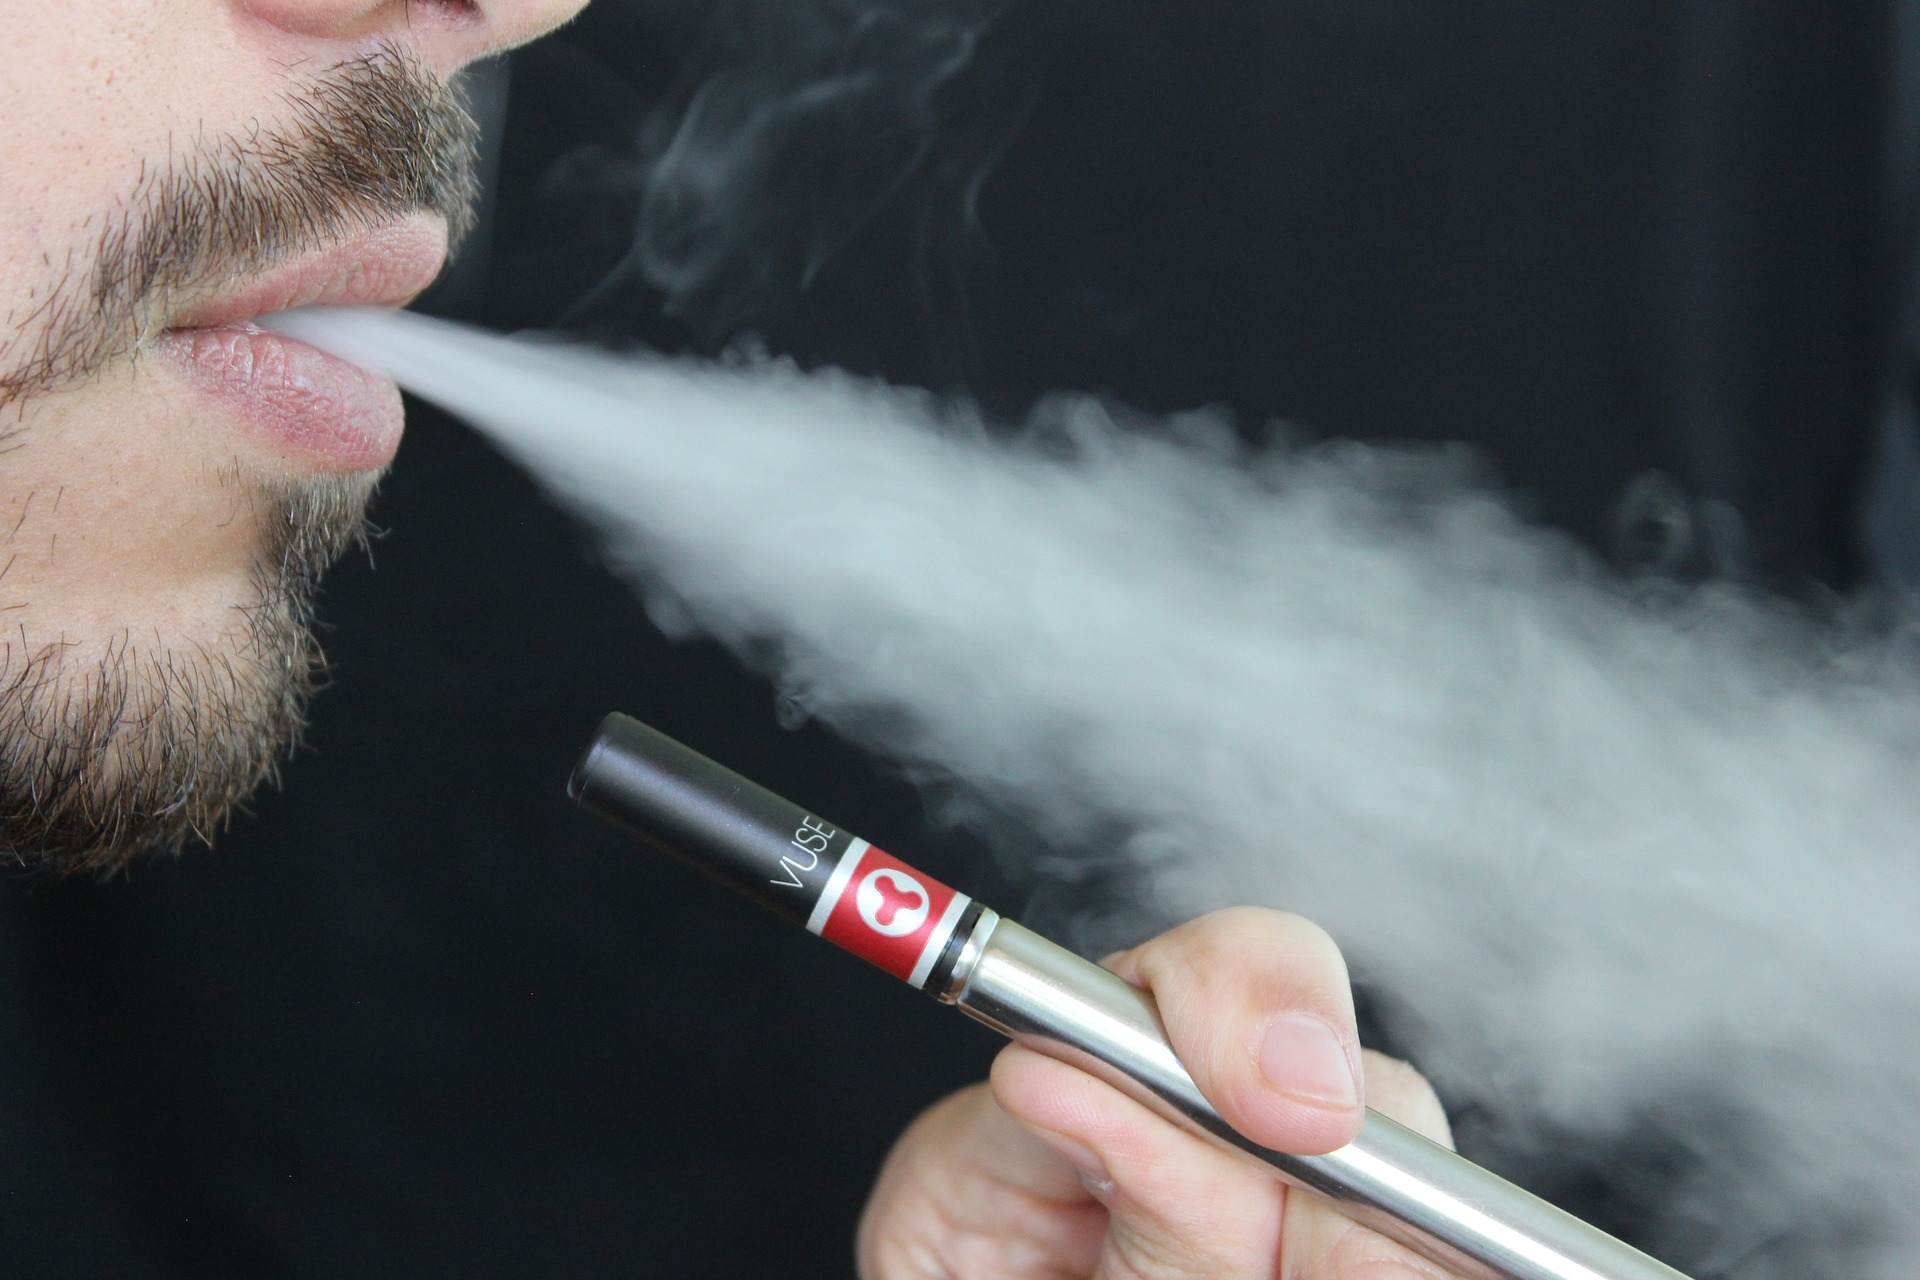 Image: Rise in e-cigarettes linked to rise in smokers quitting